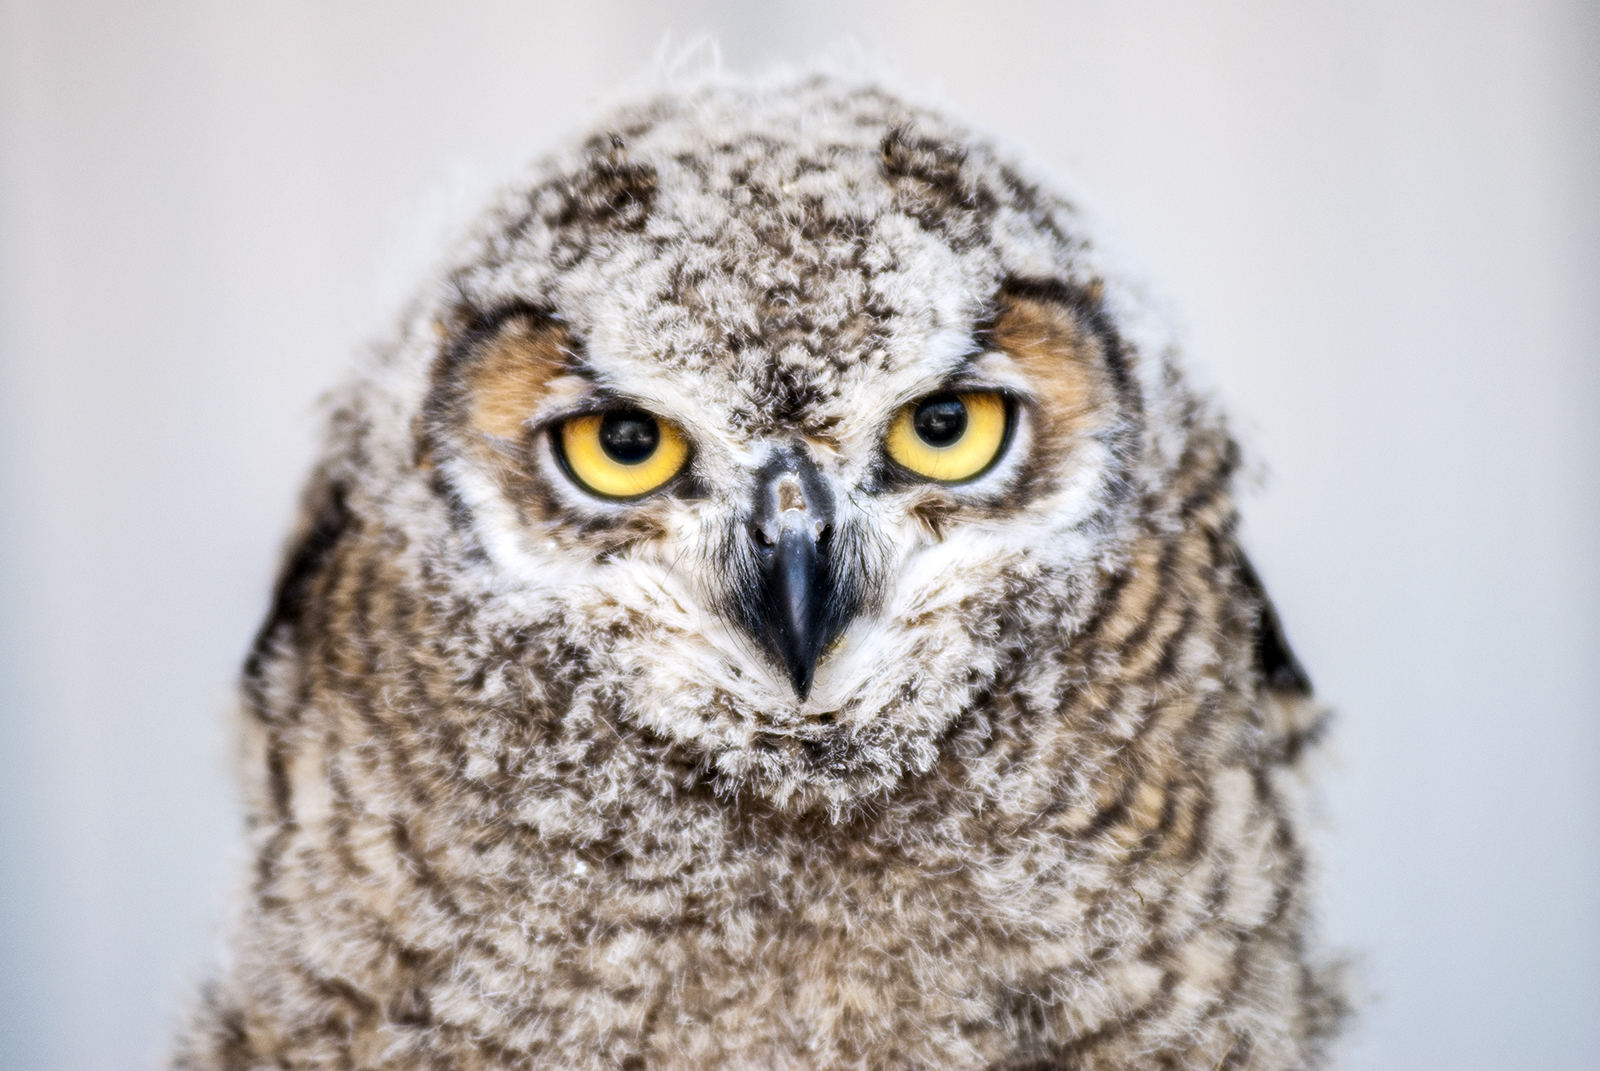 (untitled) Great horned owl